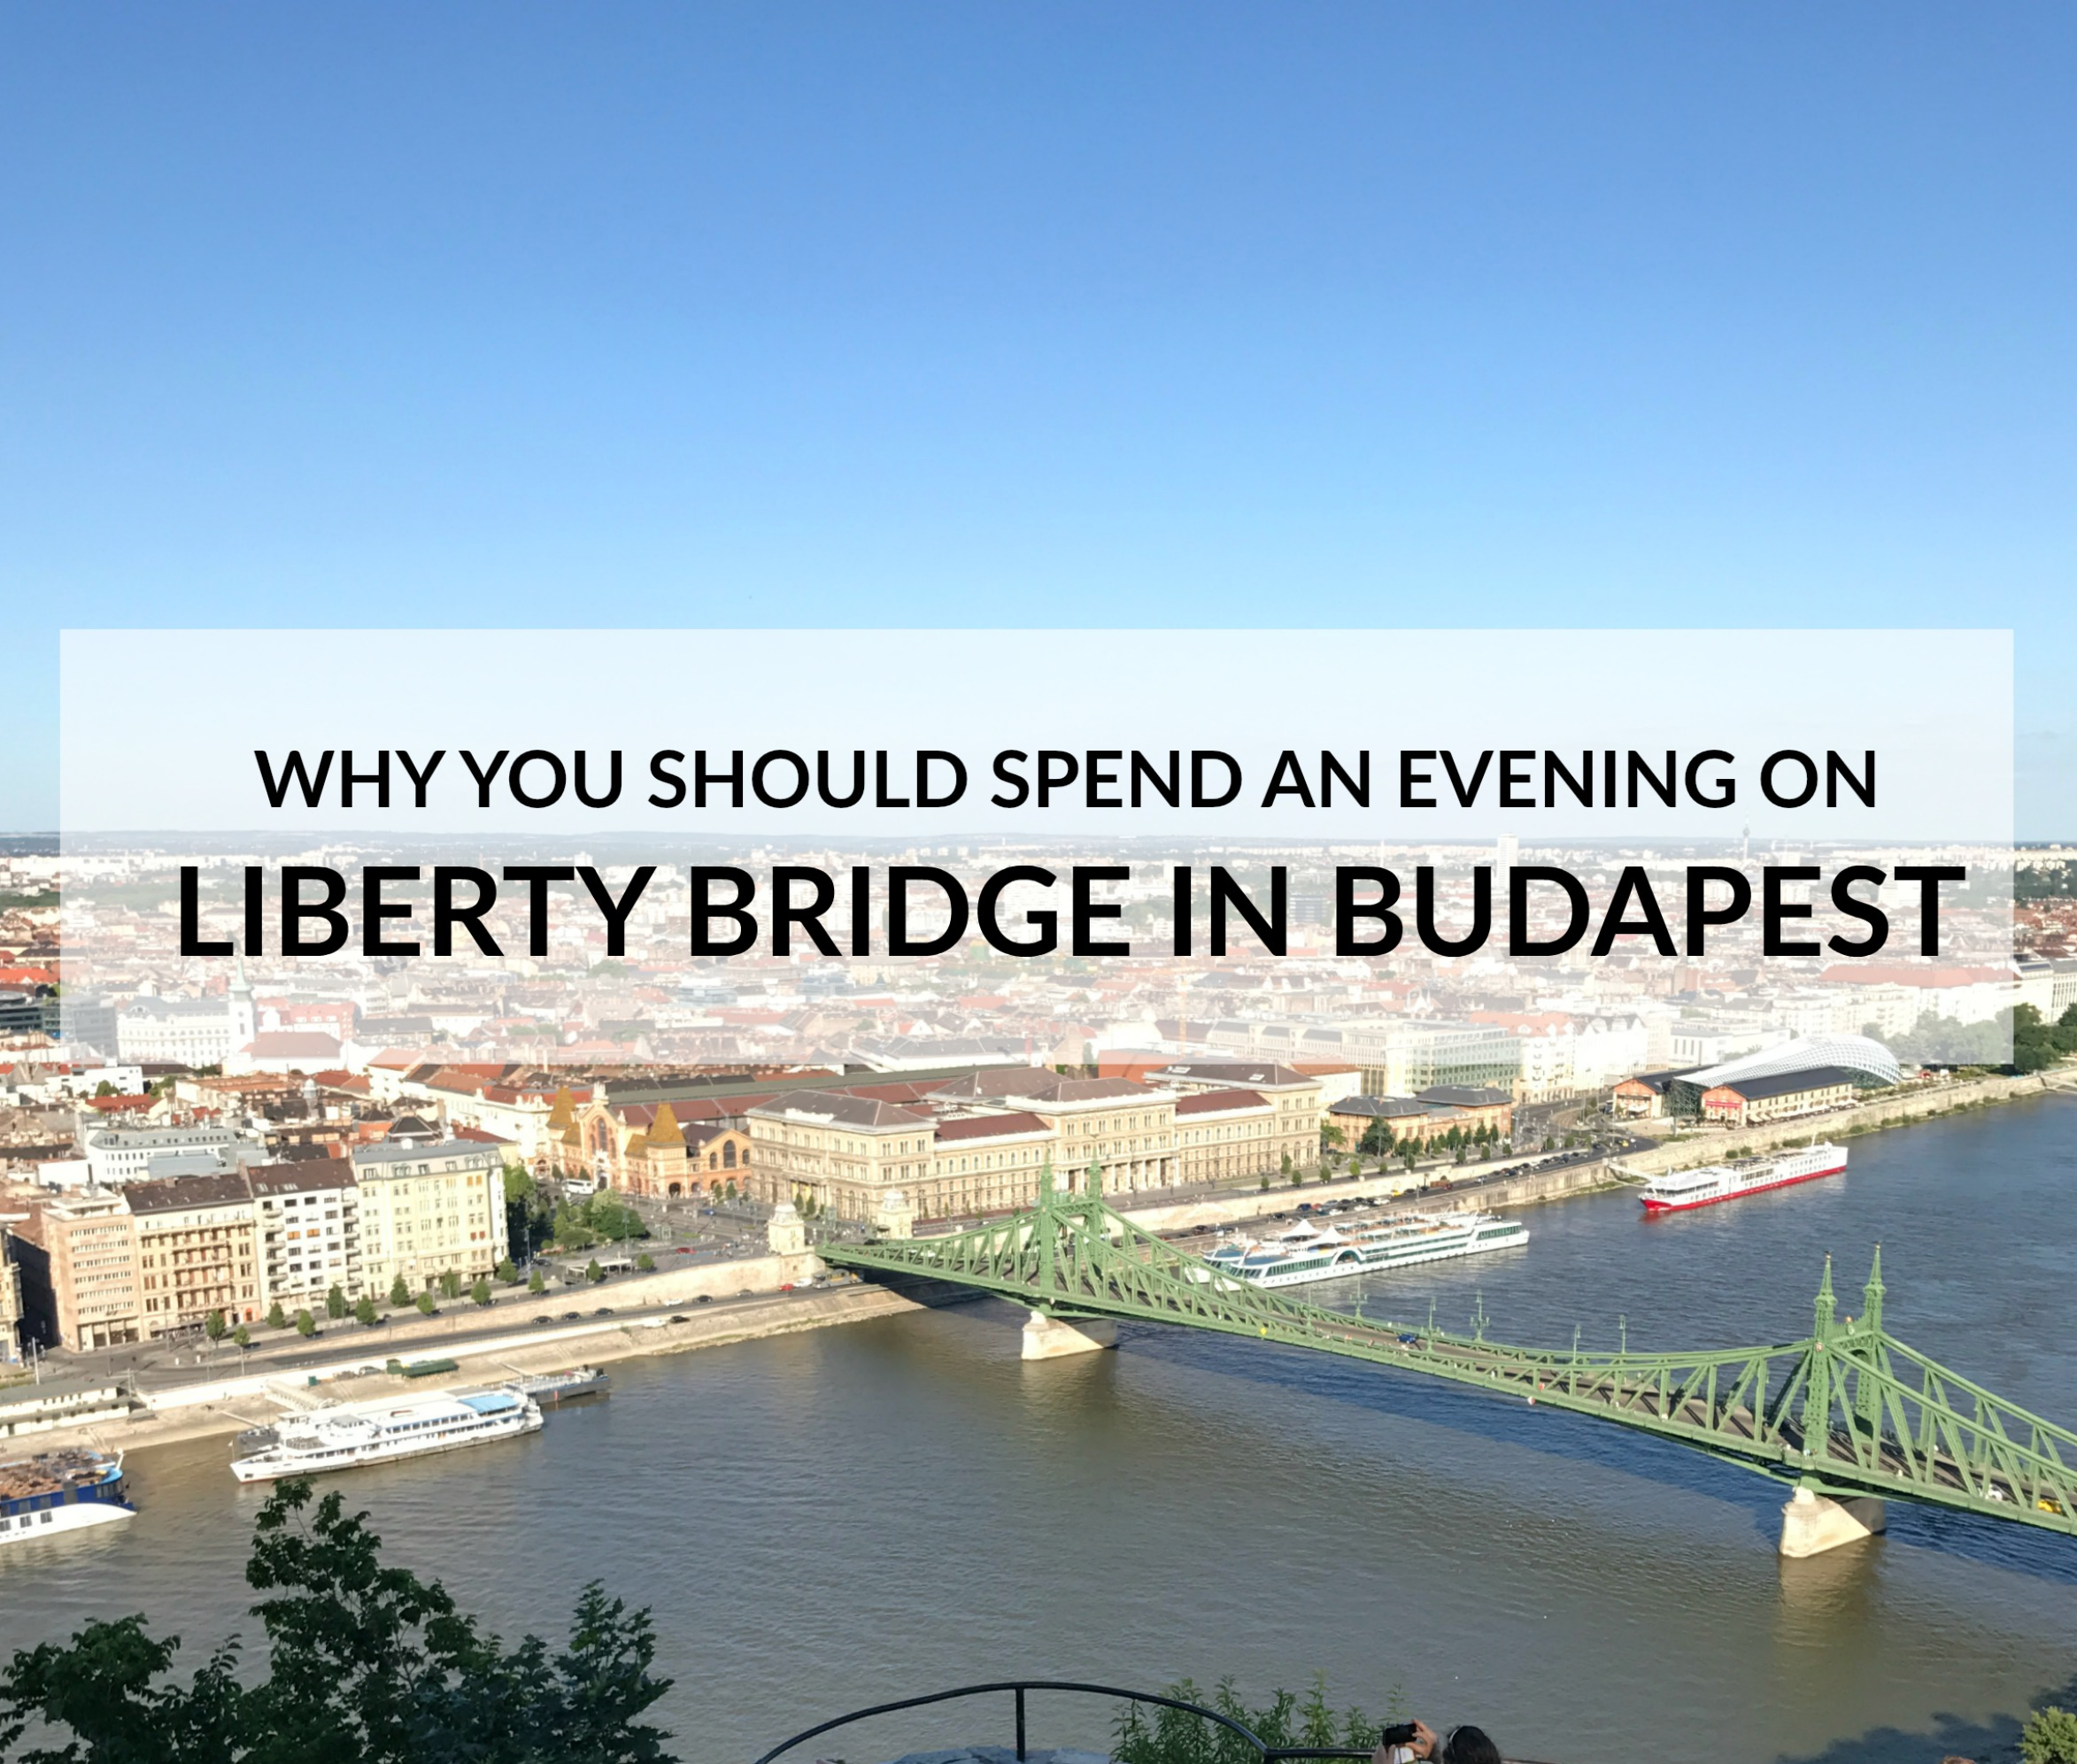 Why You Should Spend an Evening on Liberty Bridge in Budapest